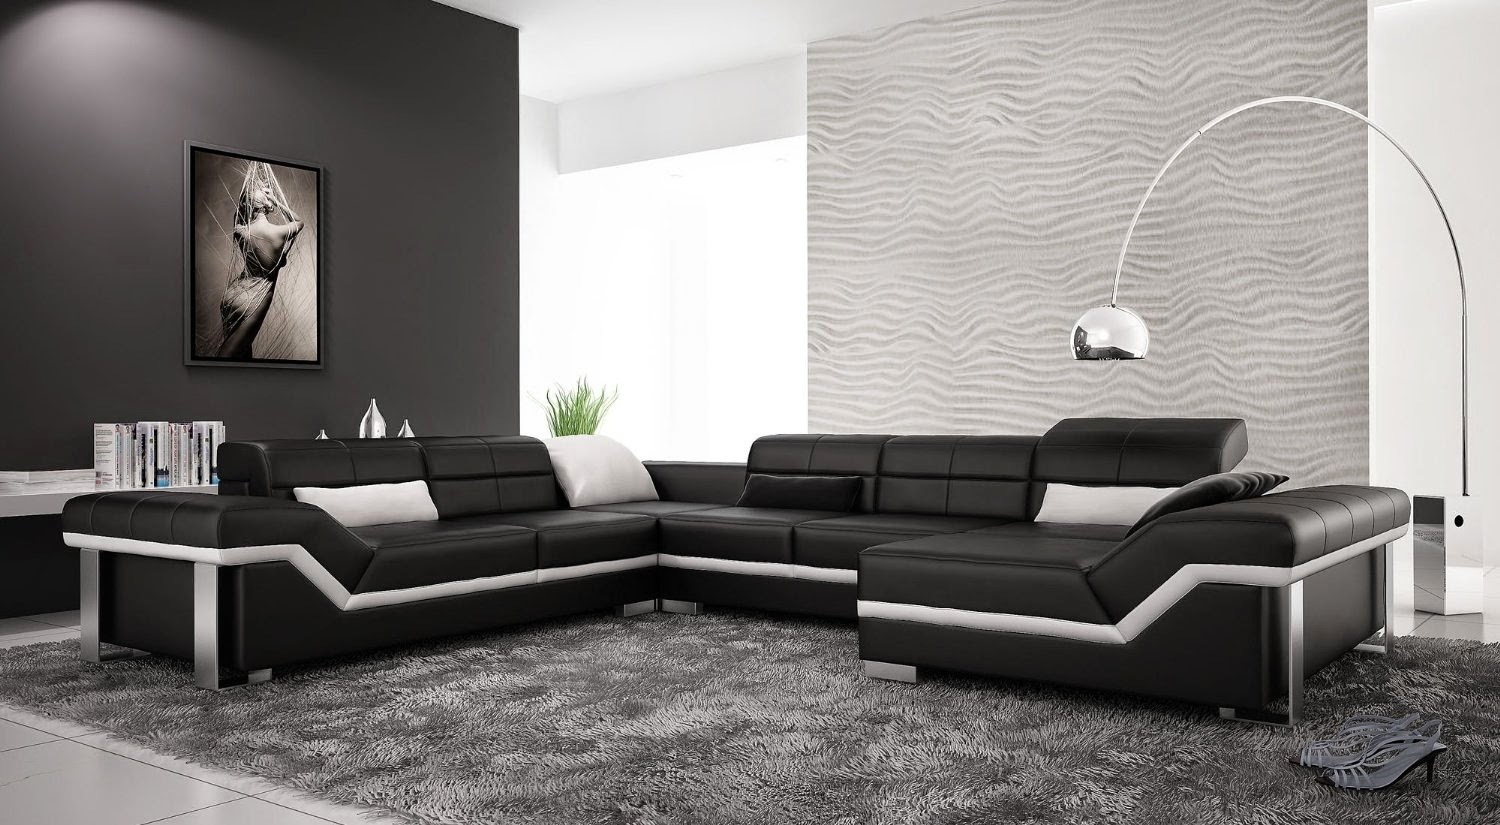 Black Leather Couch Modern Black Leather Couch